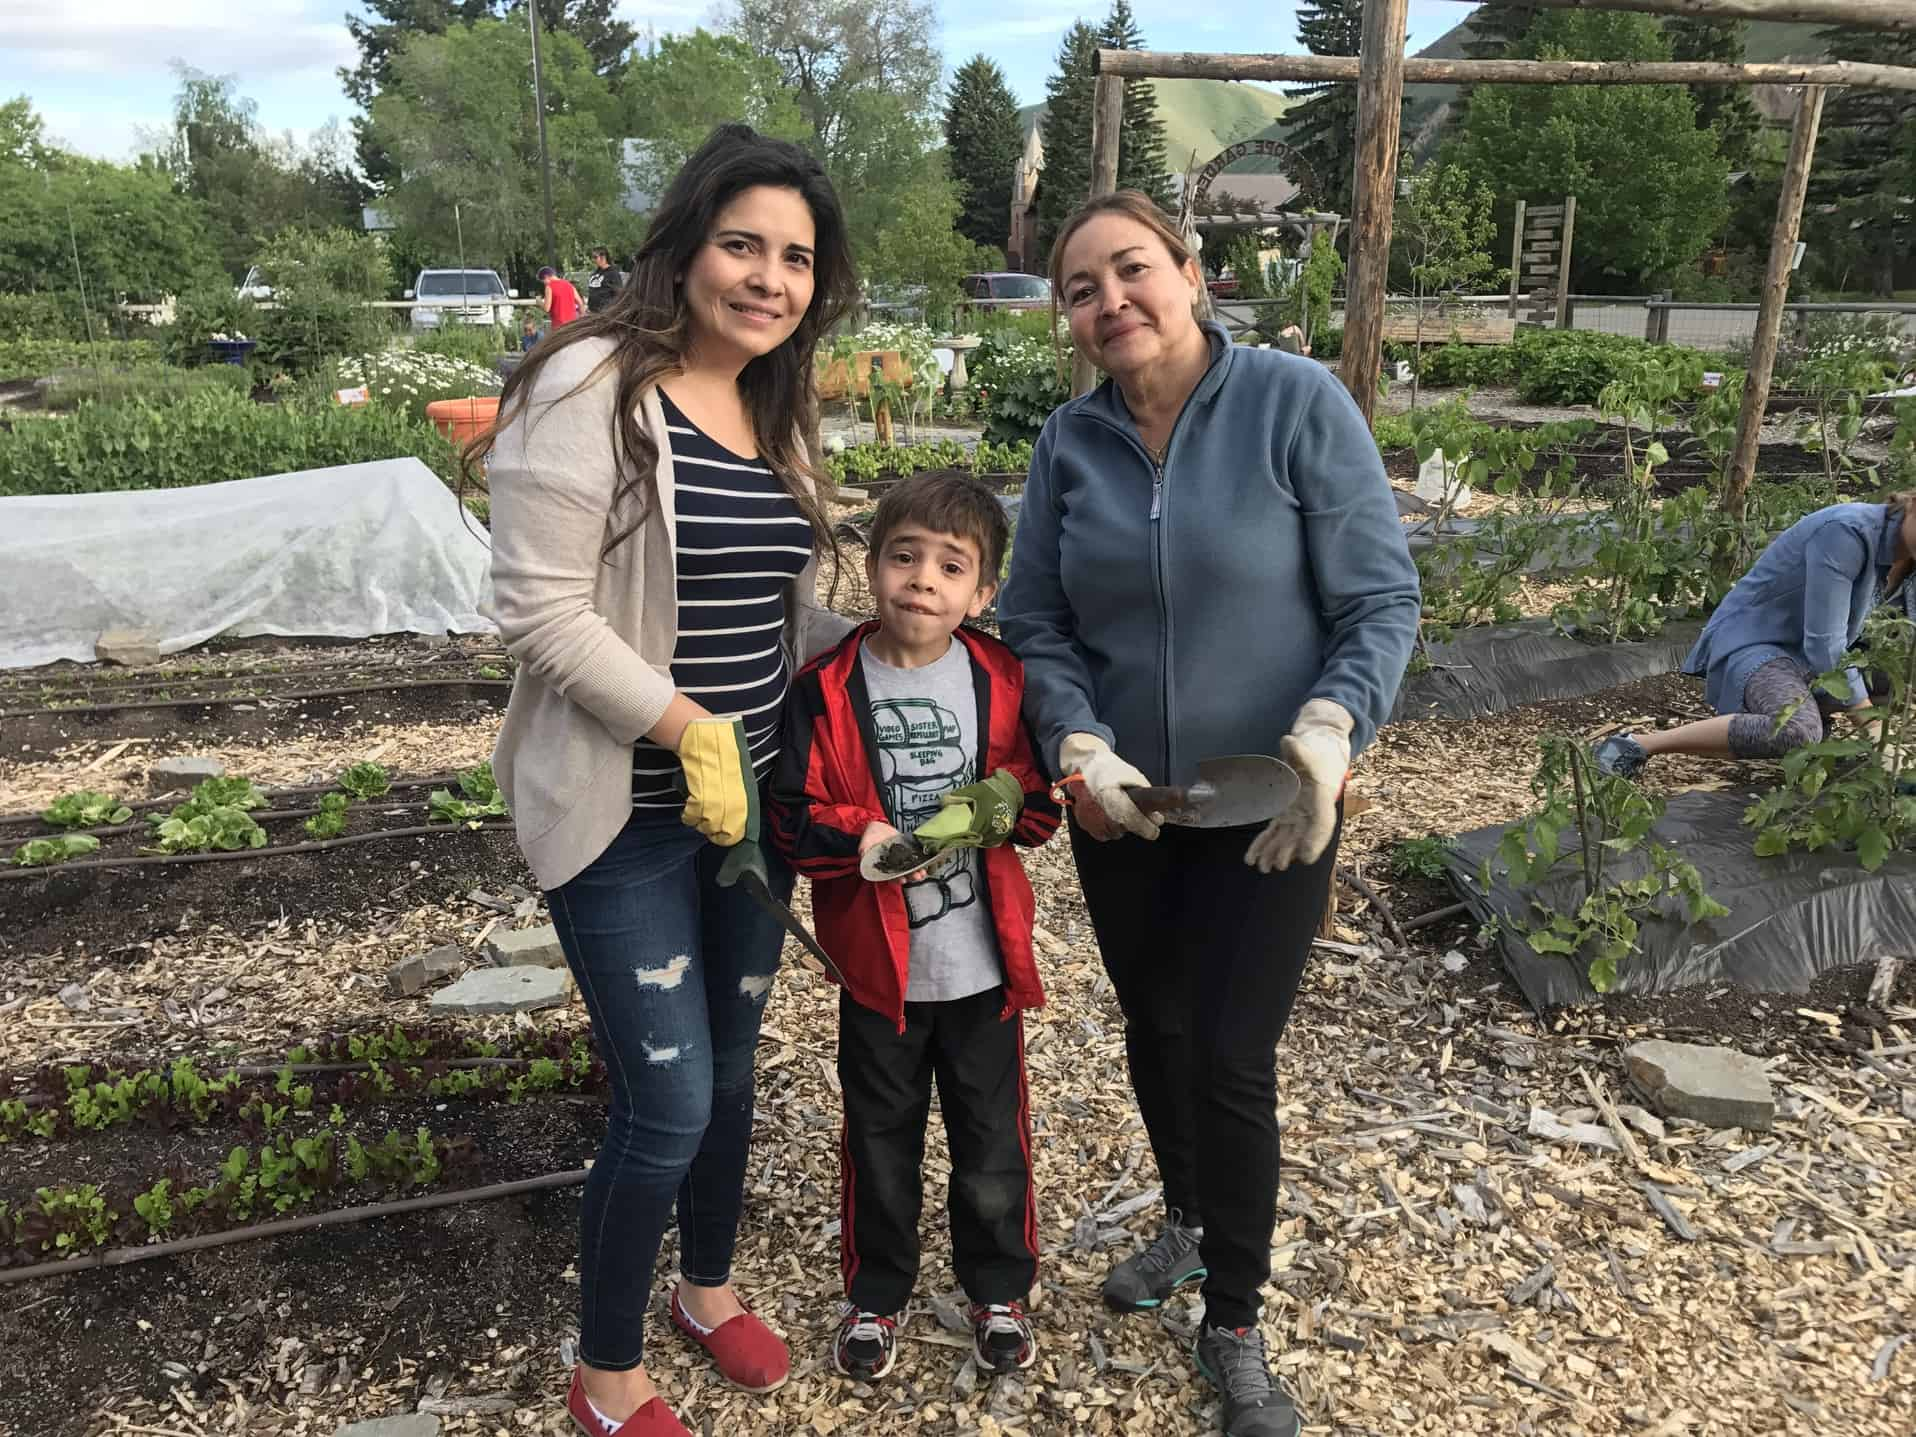 Volunteer for Veggies - Hope